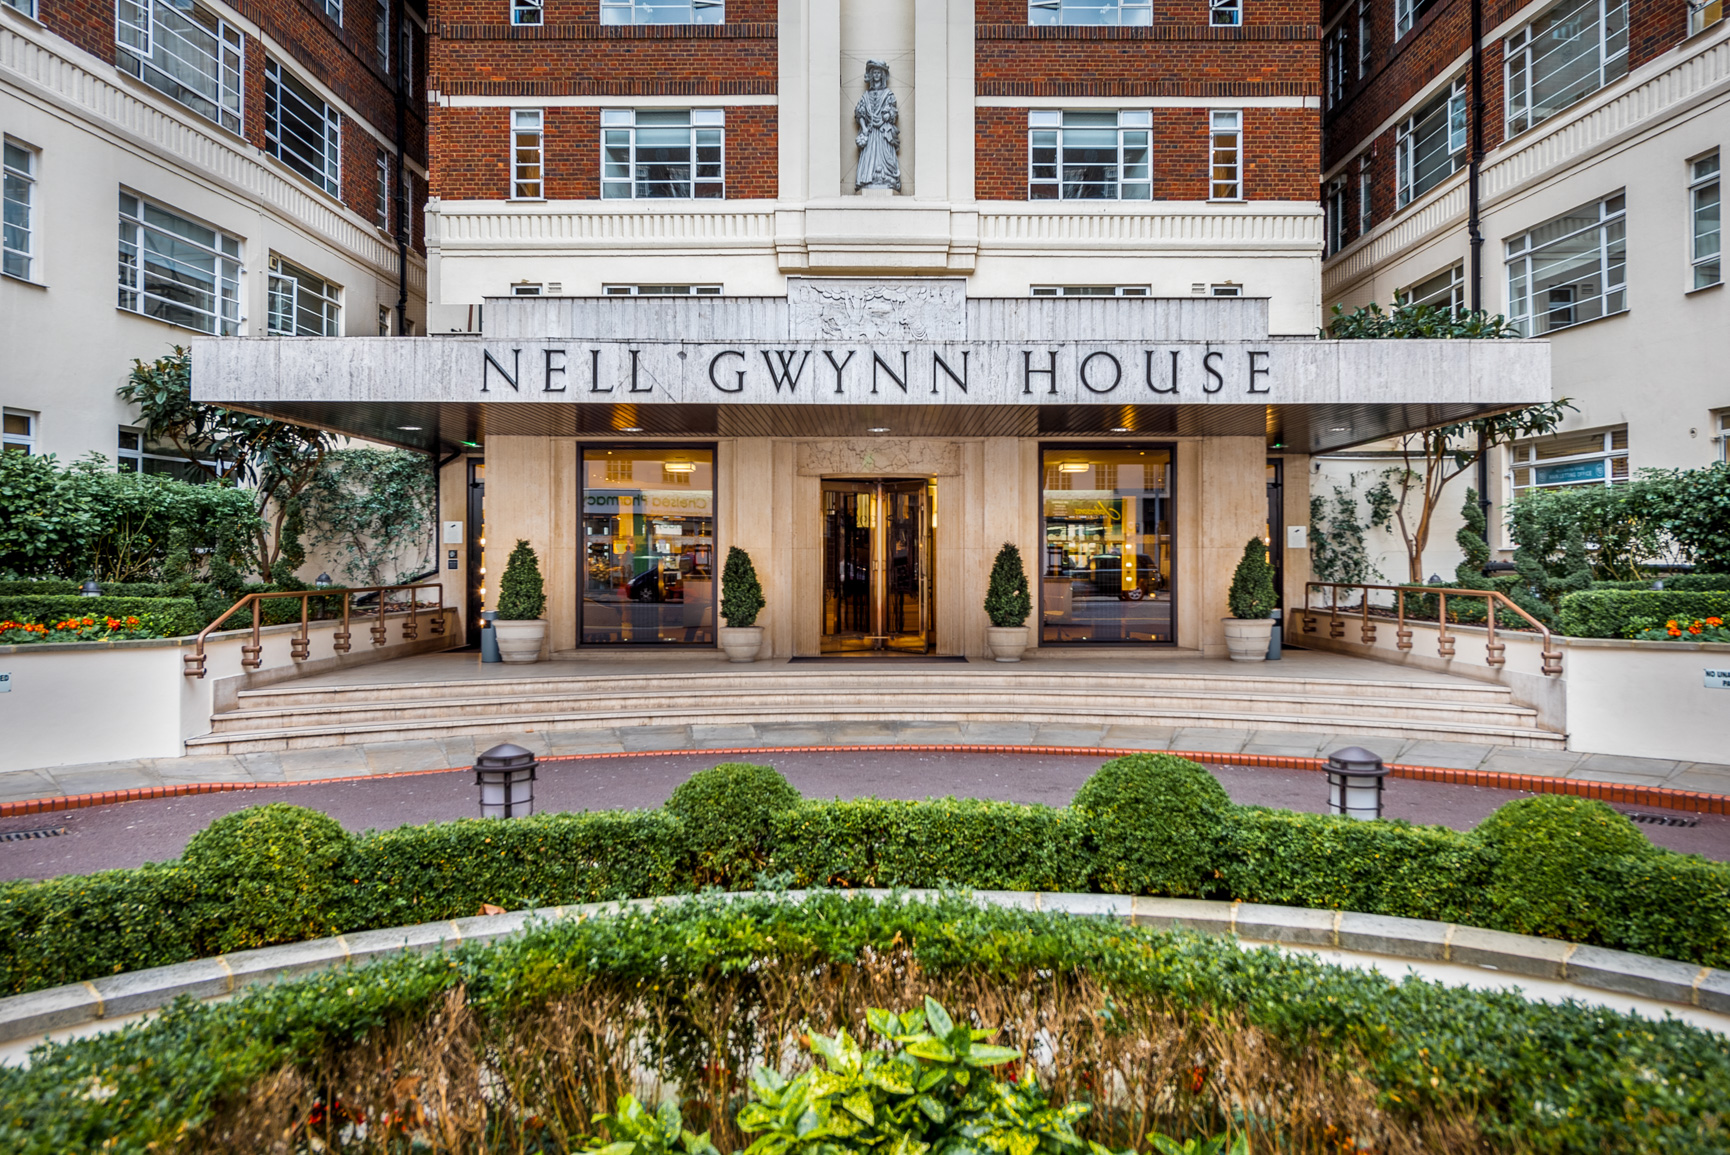 Entrance to Nell Gwynn House Accommodation, Chelsea, London